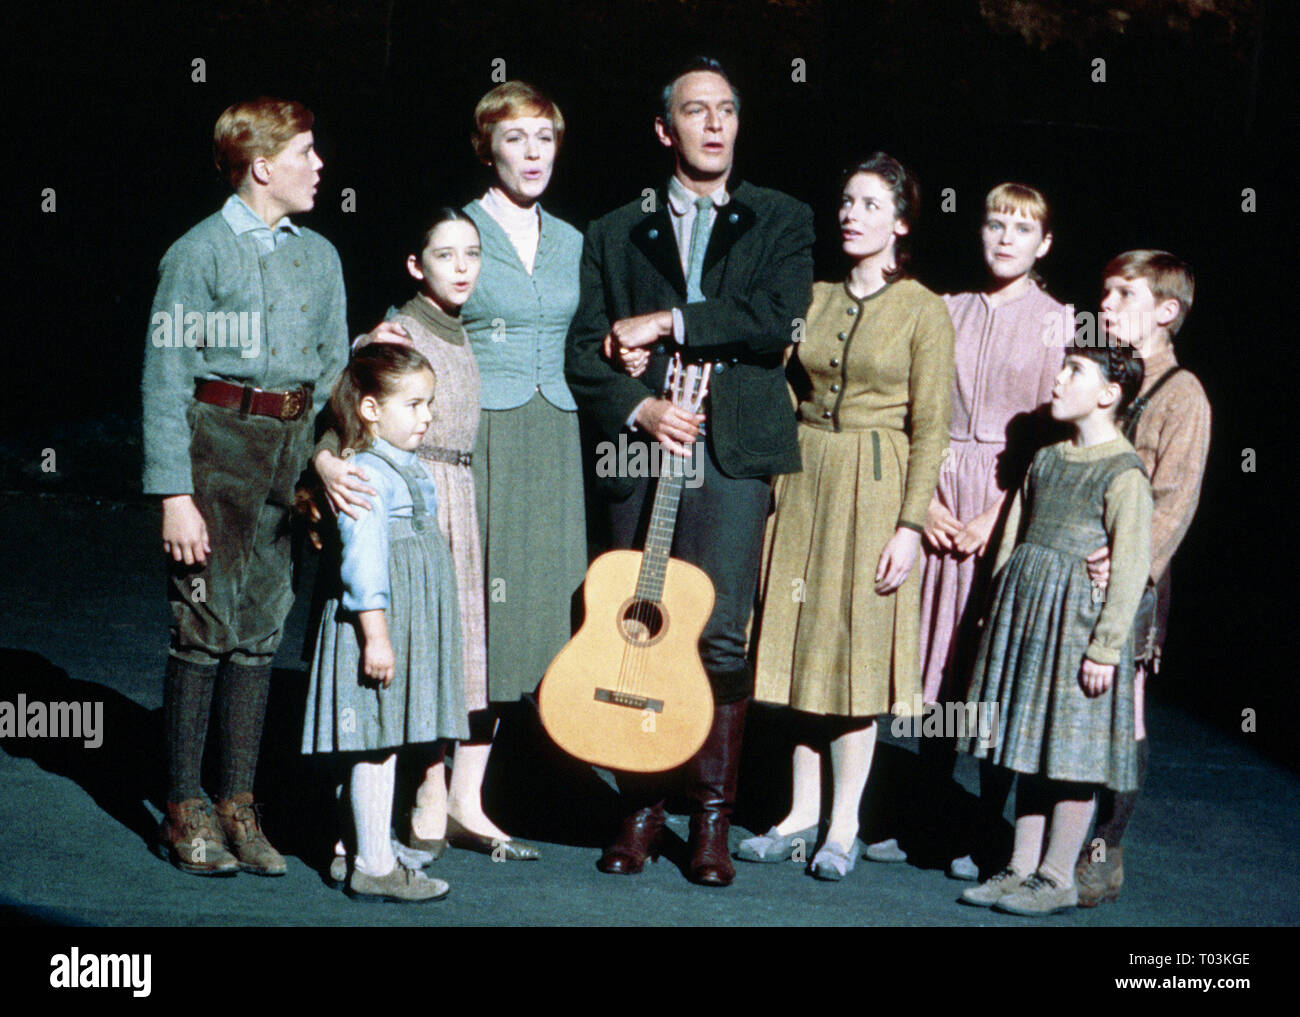 NICHOLAS HAMMOND, KYM KARATH, HEATHER MENZIES, JULIE ANDREWS, CHRISTOPHER PLUMMER, CHARMIAN CARR, PEGGY WOOD, DUANE CHASE, DEBBIE TURNER - Stock Image